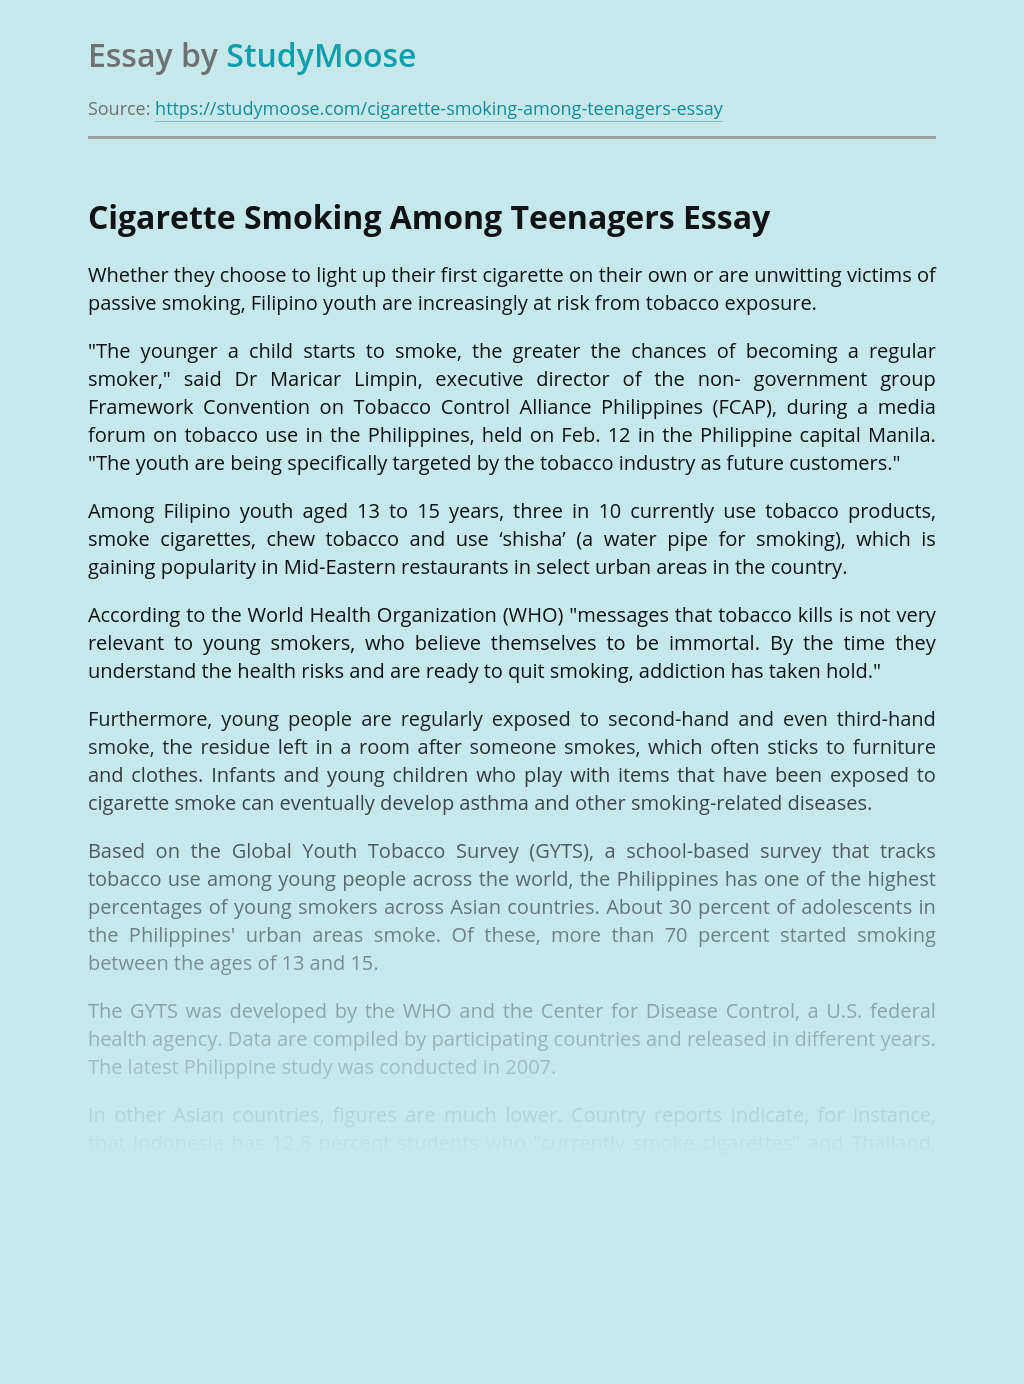 Cigarette Smoking Among Teenagers